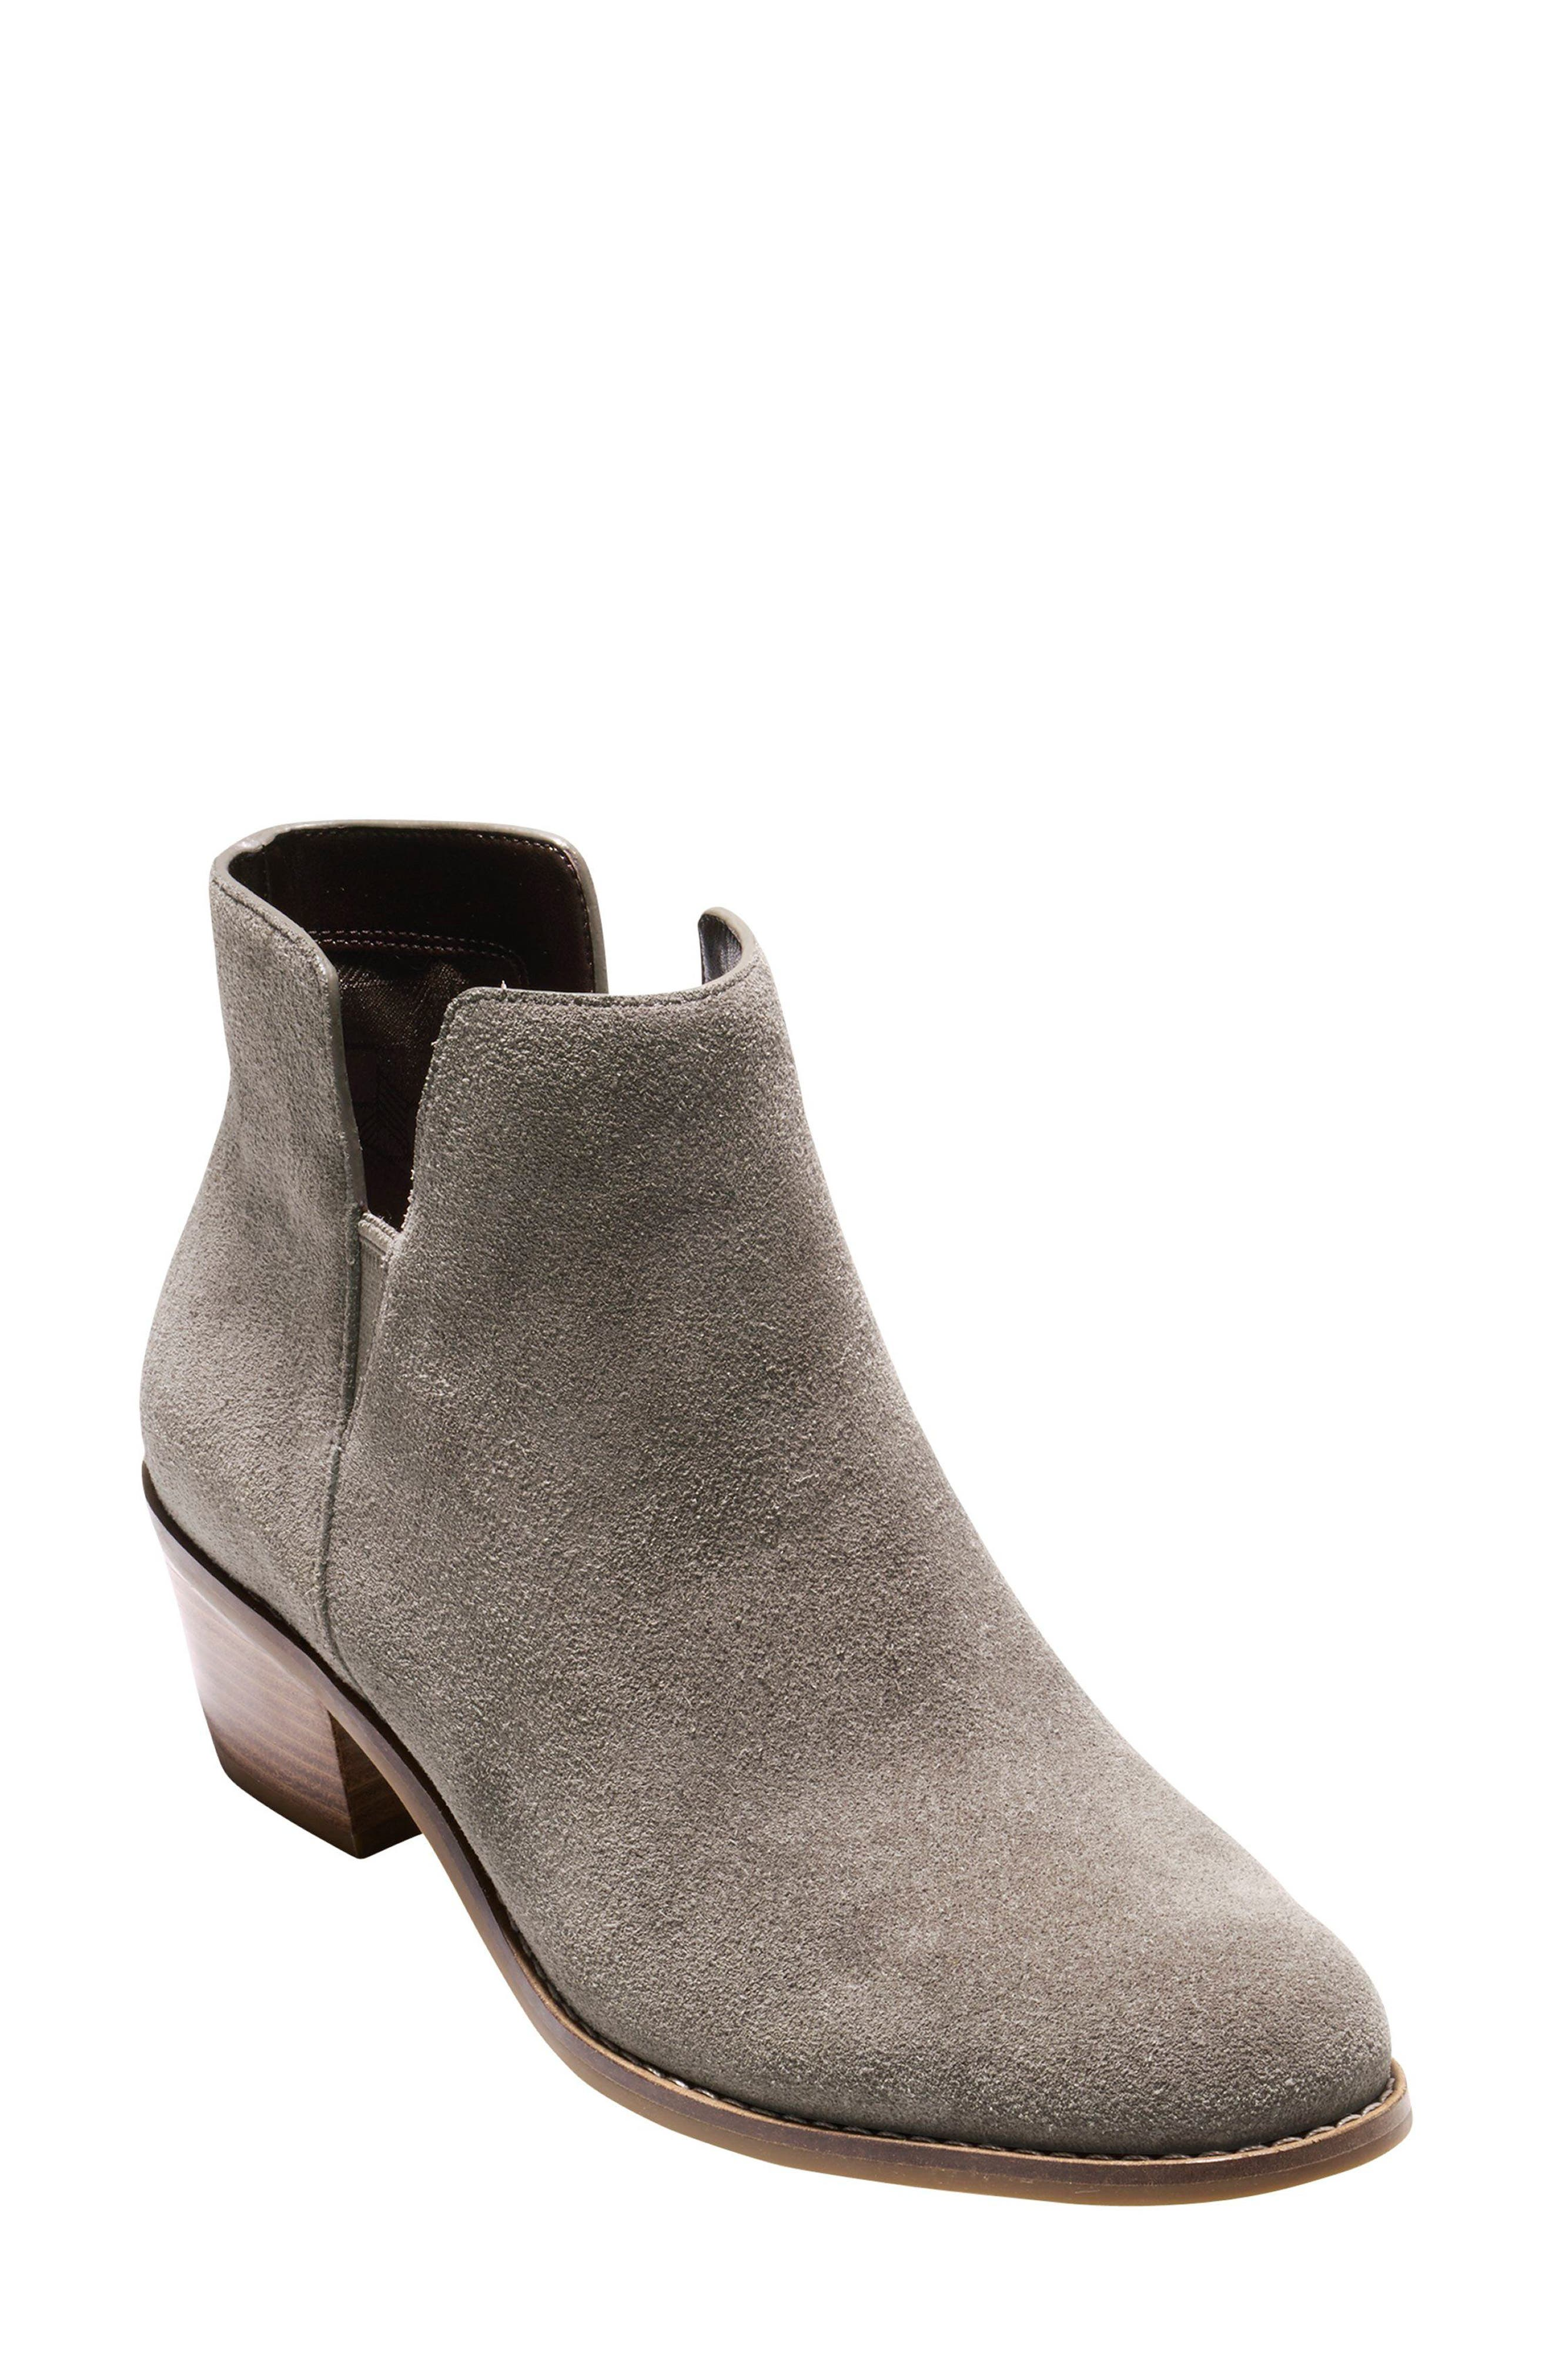 'Abbot' Chelsea Boot,                         Main,                         color, Morel Suede